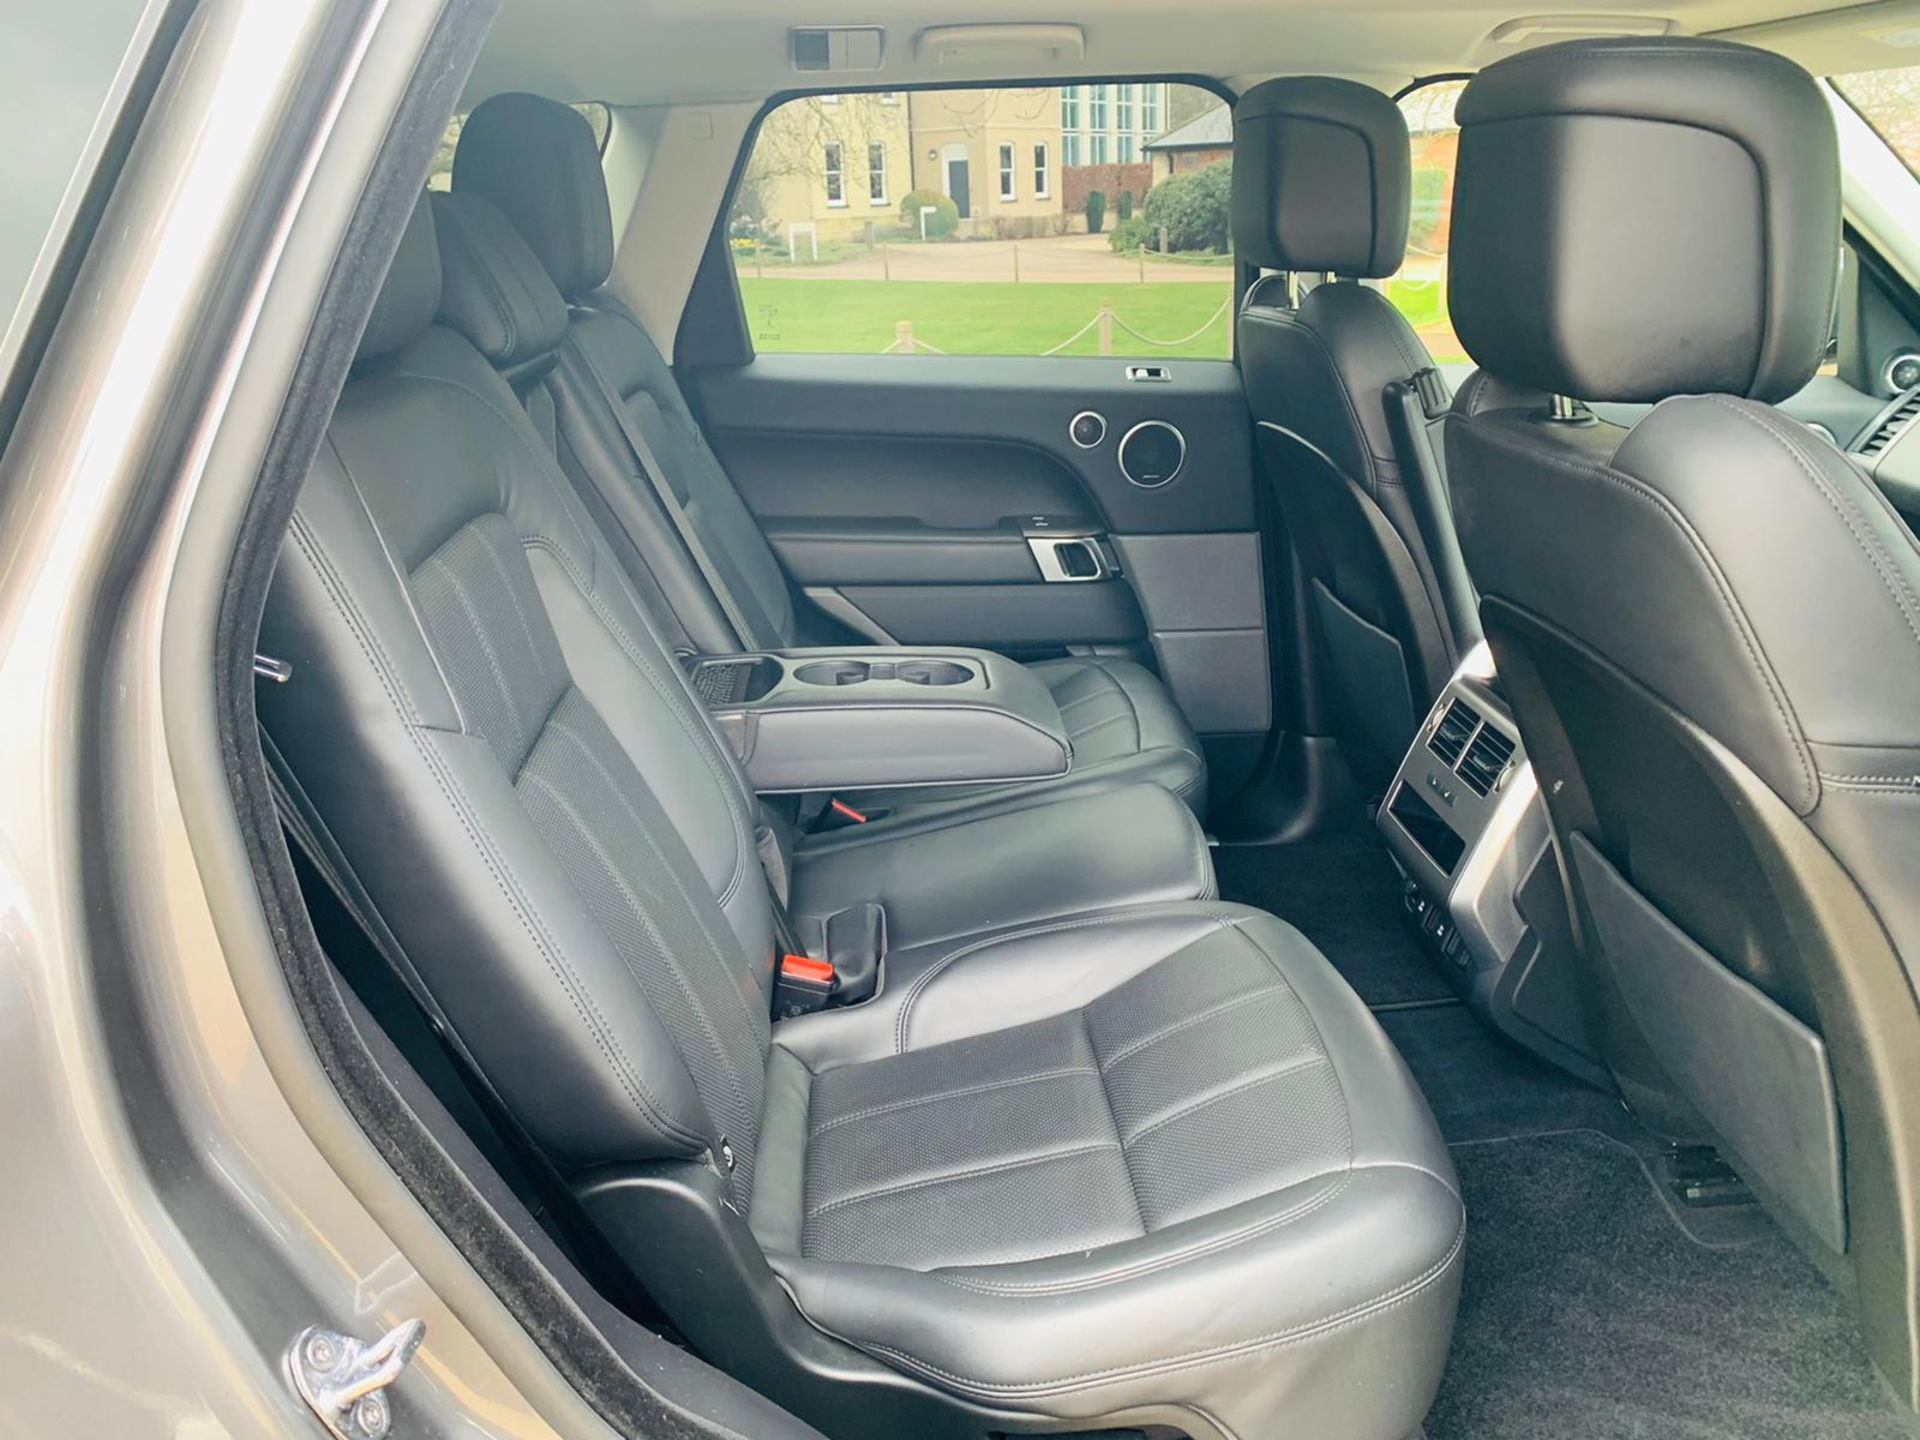 (RESERVE MET) Range Rover Sport 3.0 SDV6 HSE Auto - 2019 - 1 Keeper From New - Virtual Cockpit - - Image 26 of 42